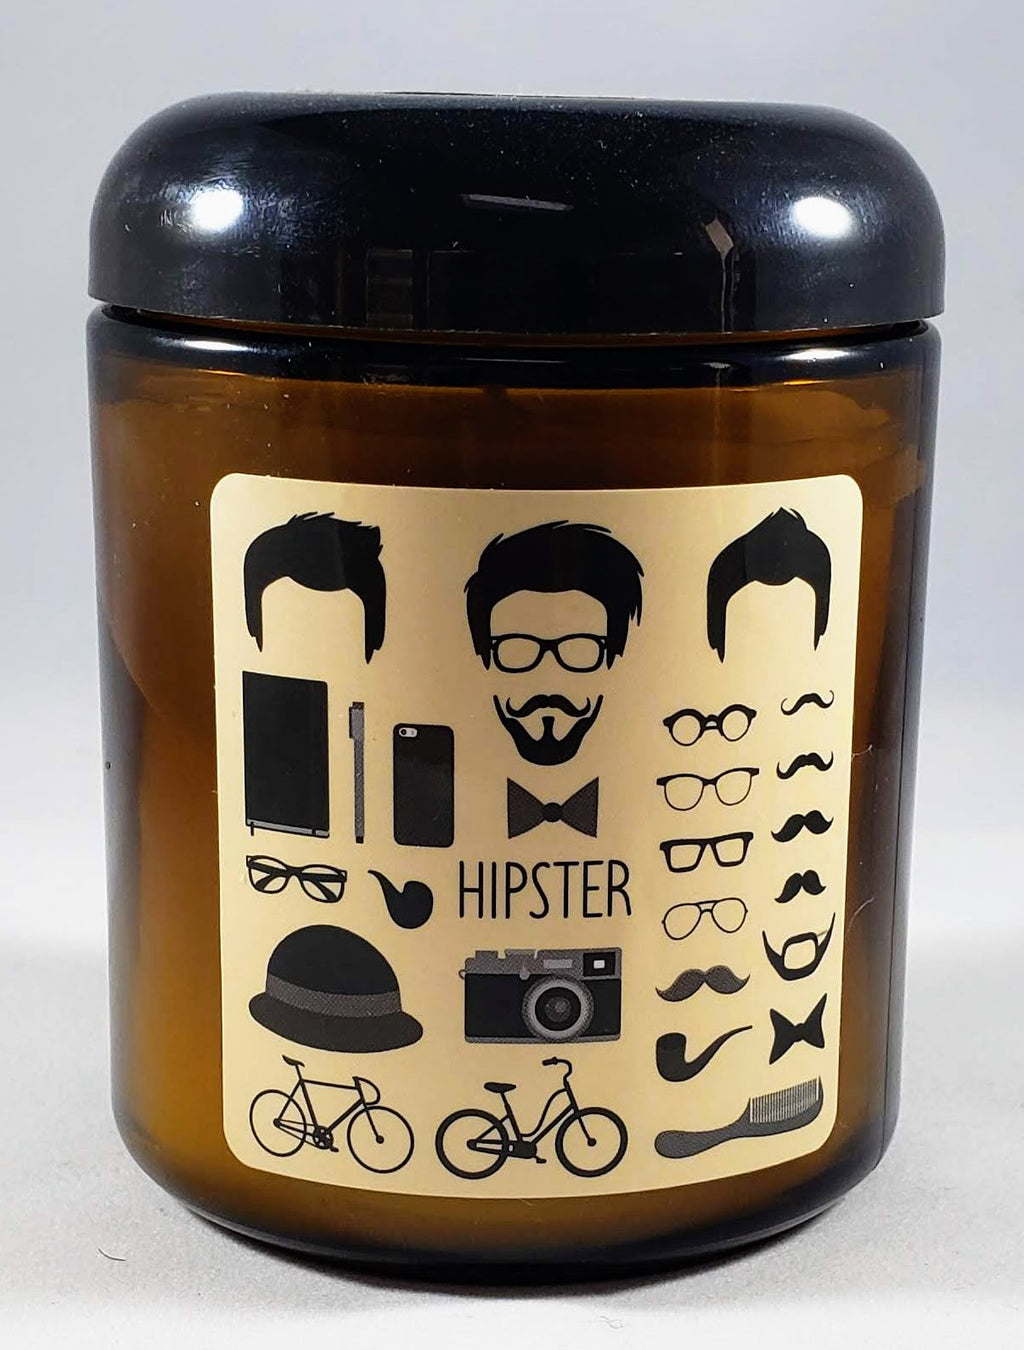 The Hipster Candle